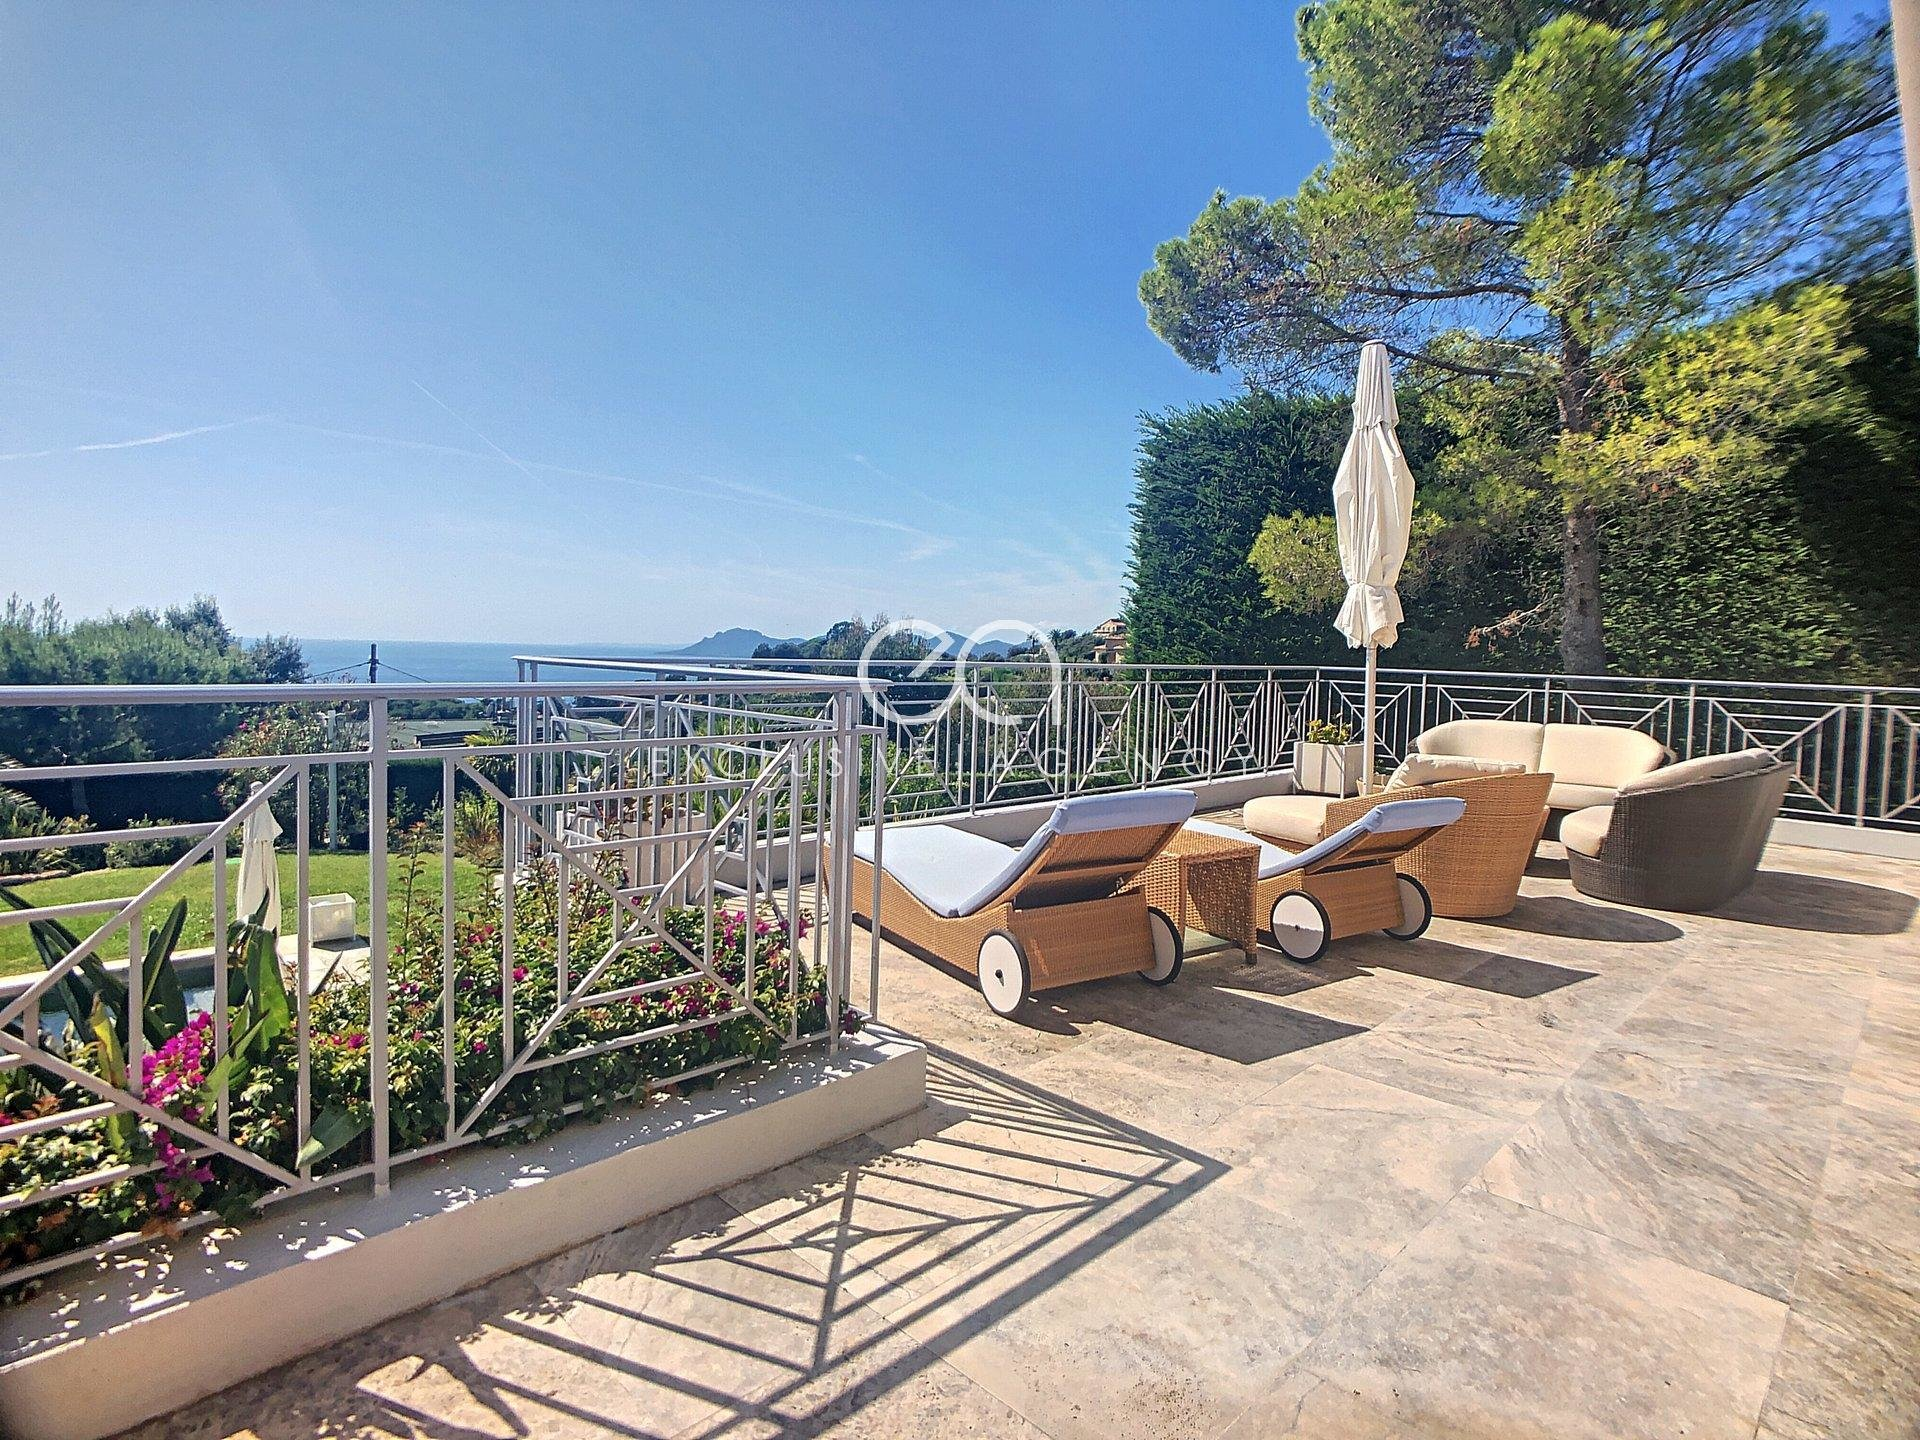 Super Cannes Luxury furnished villa Monthly rental 260sqm 7-room with stunning panoramic sew view and heated pool